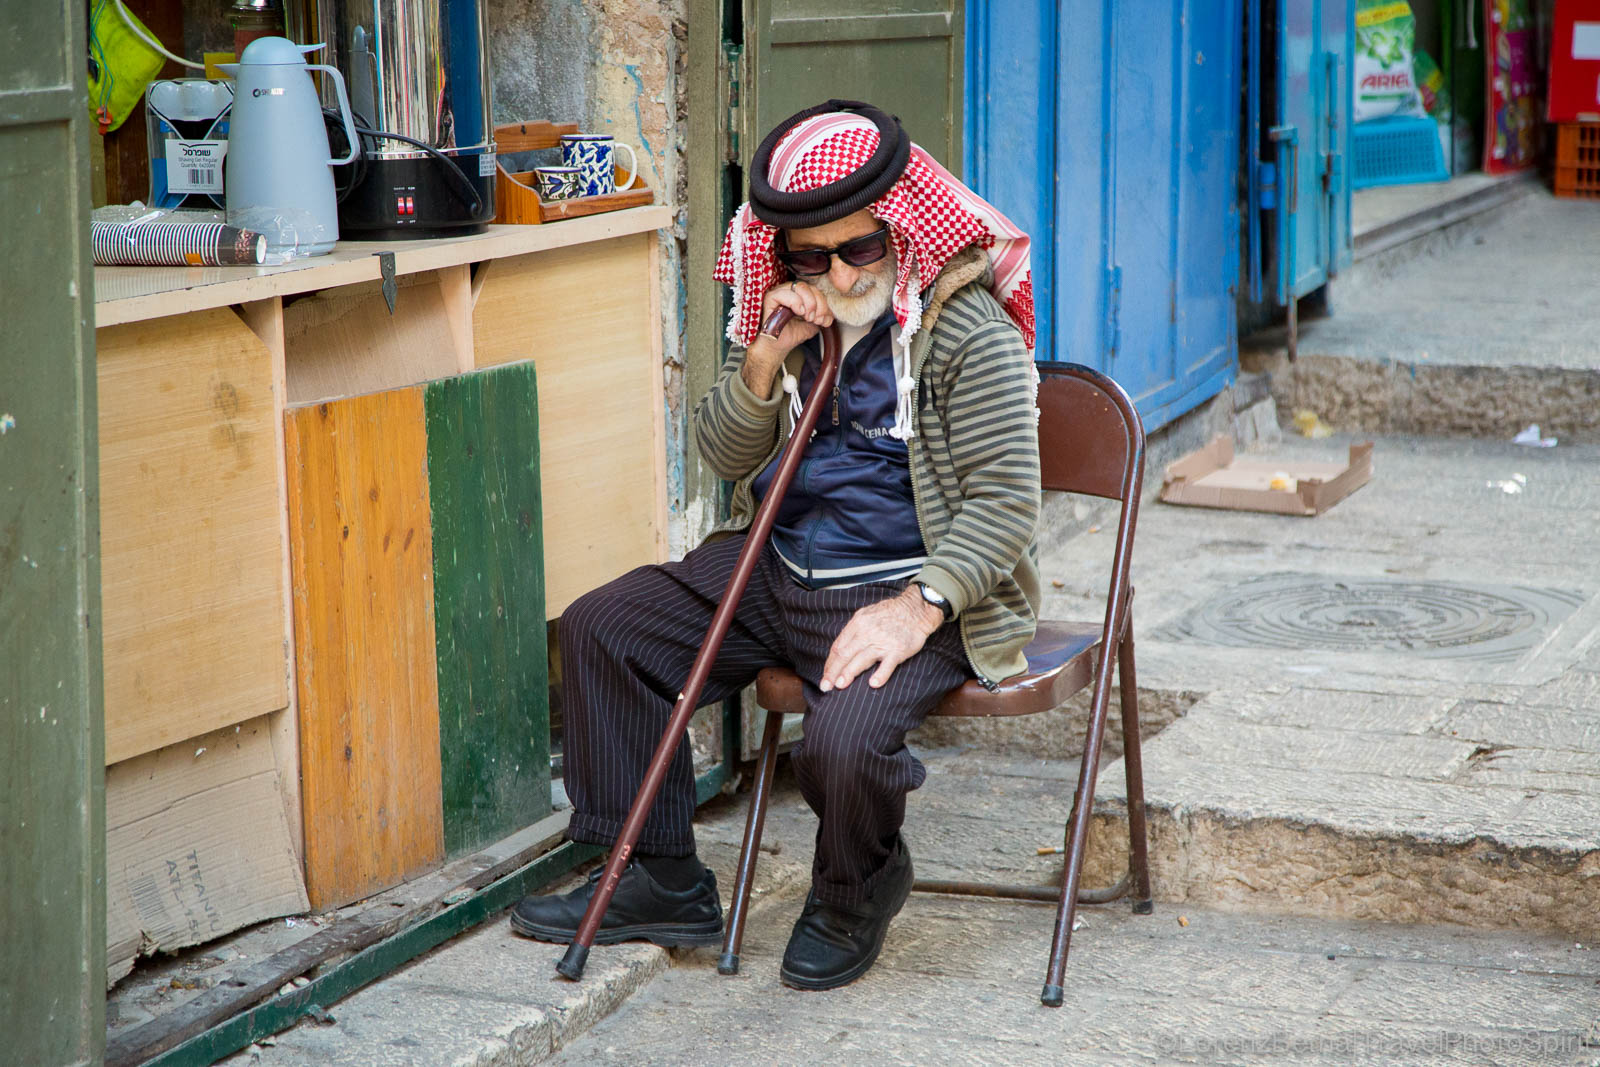 Old Palestinian man sitting in front of a shop in the Muslim quarter of the Old City of Jerusalem, Israel.